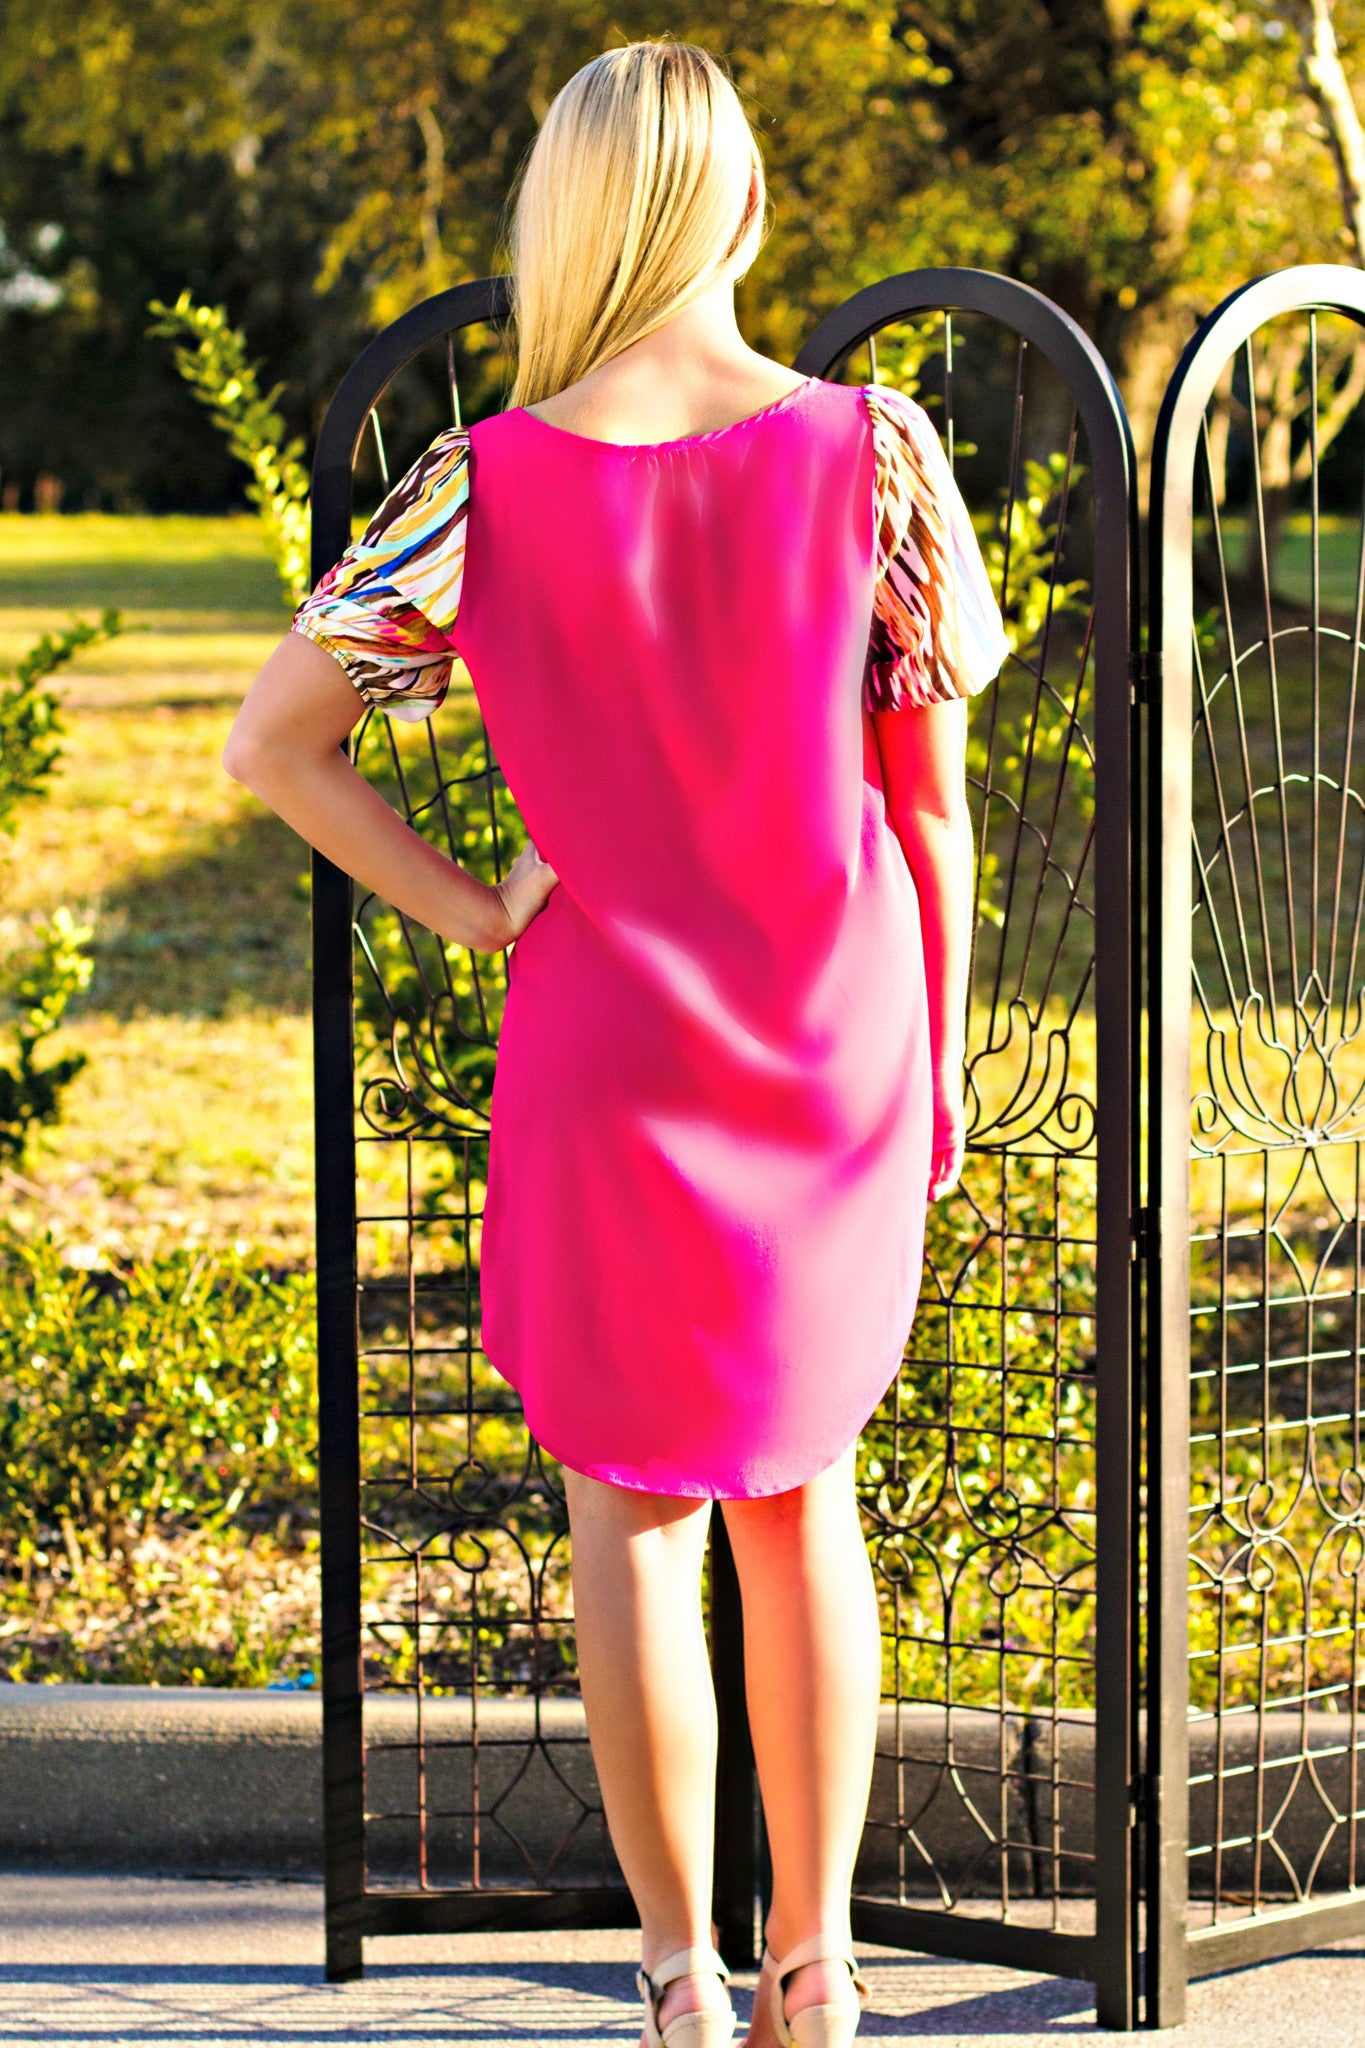 Glam: Carmen Dress, Pink